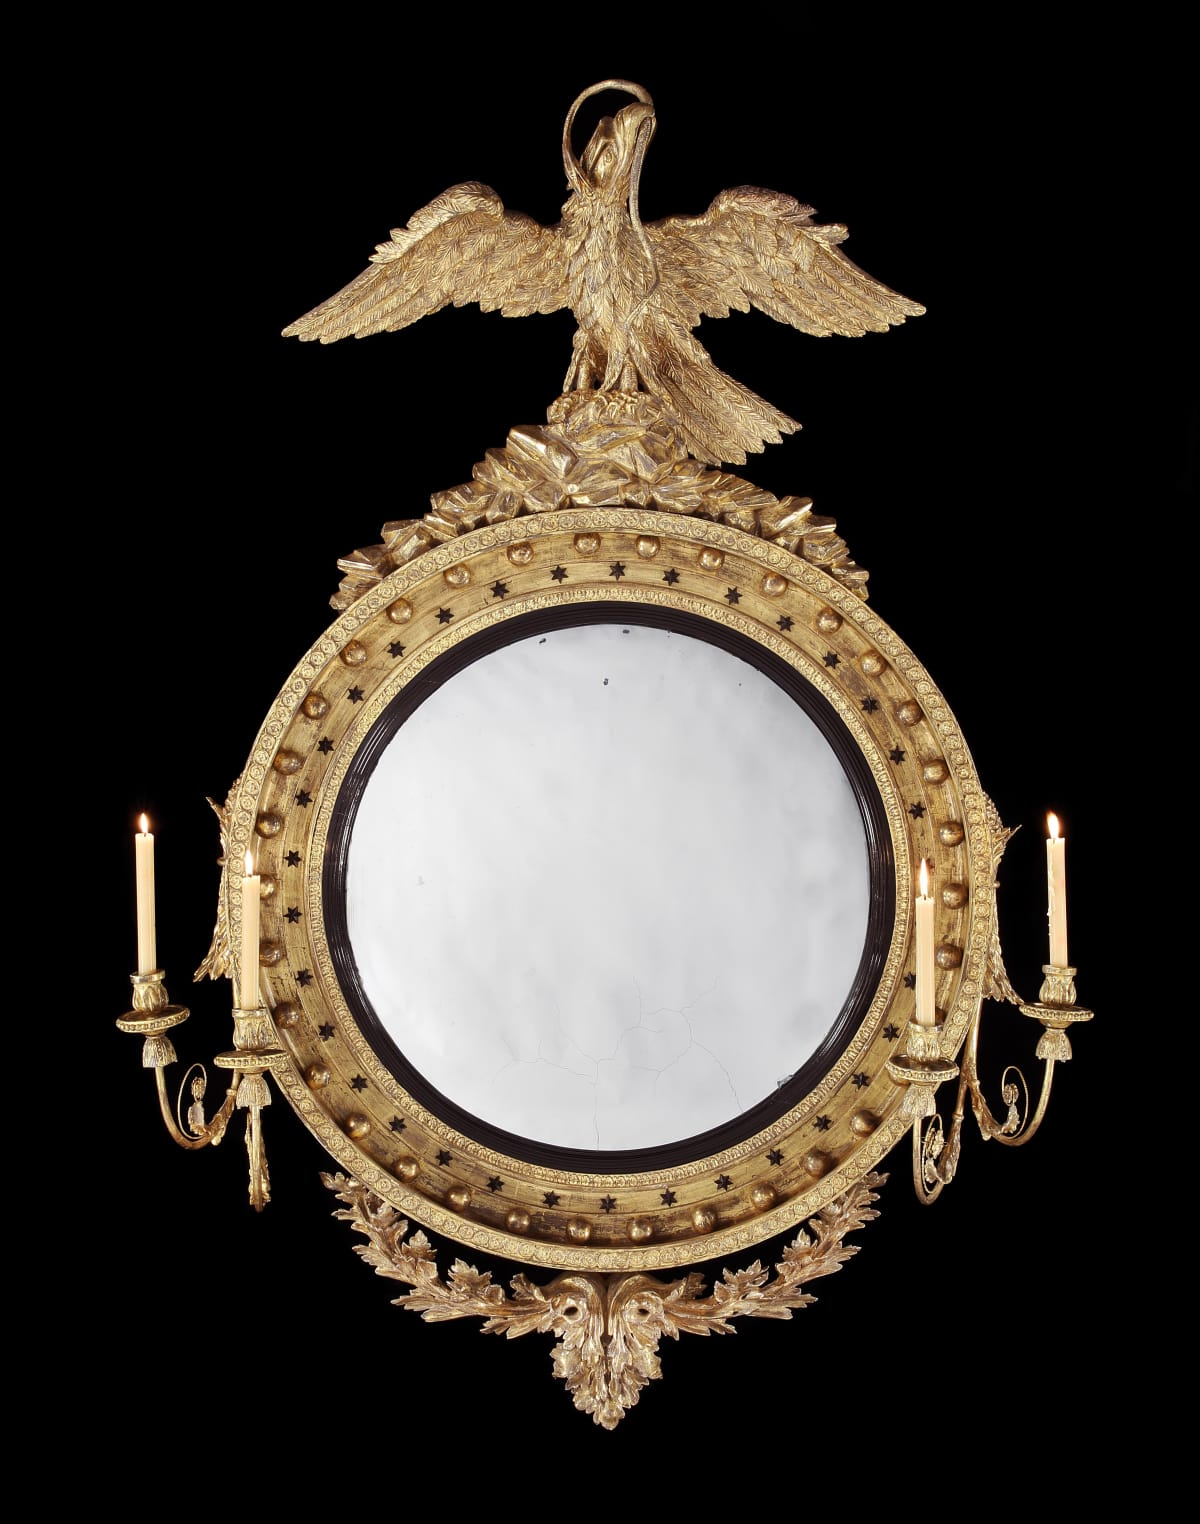 A HUGE REGENCY CARVED AND GILDED CONVEX MIRROR, English, circa 1810